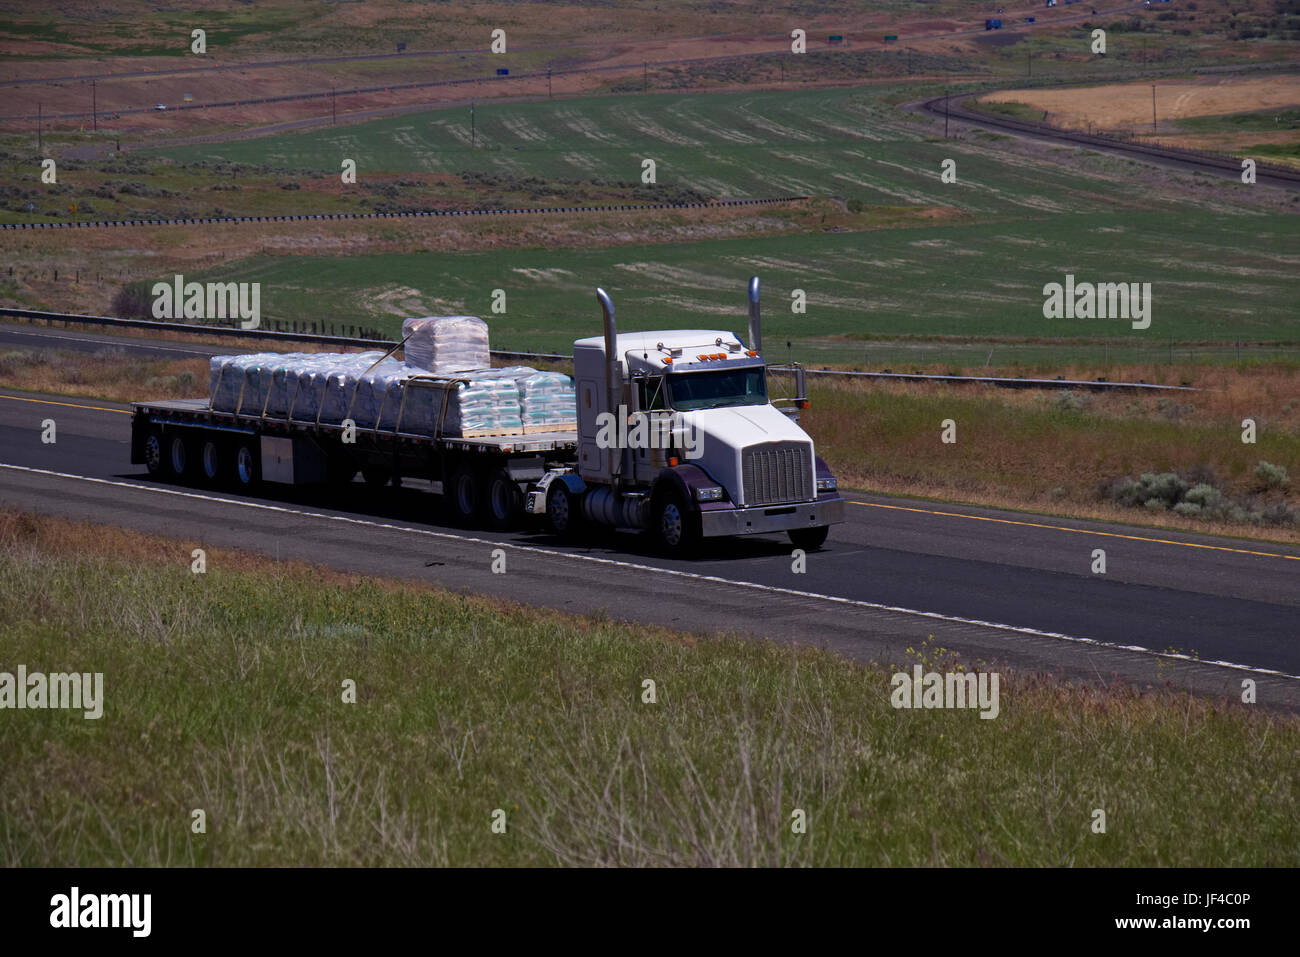 Flatbed Truck Tractor Trailer Flatbed High Resolution Stock Photography And Images Alamy